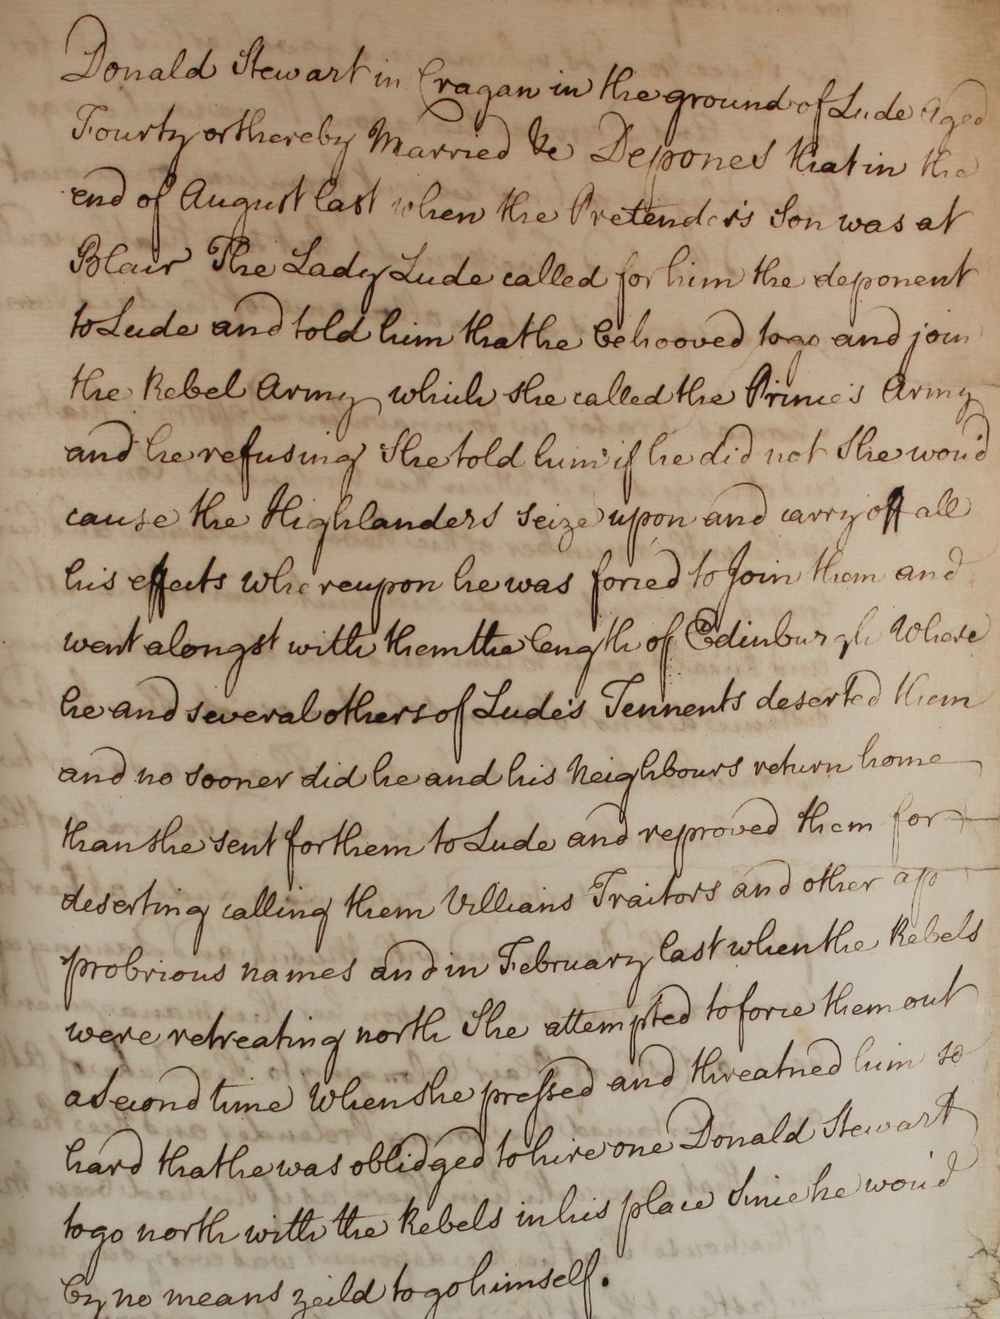 Lady Lude statement, 1746 (SP 54/33/26D)